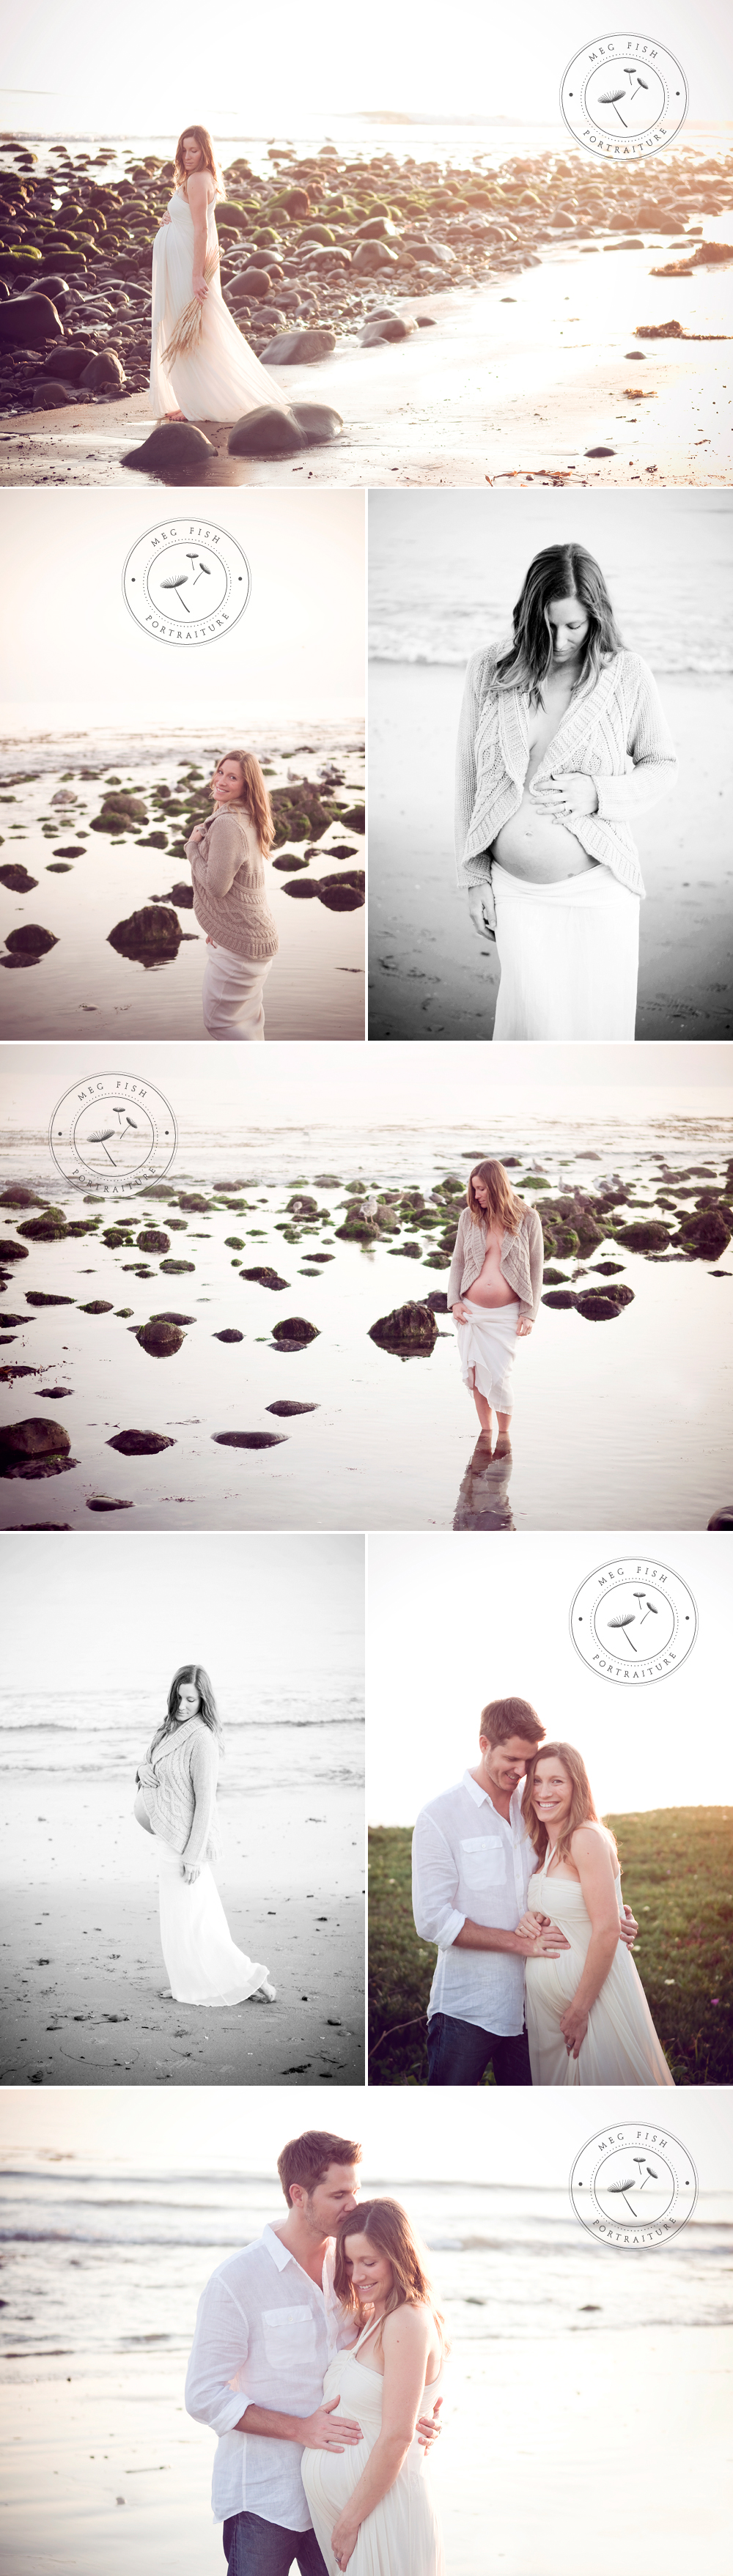 Maternity beach shoot - love the look of the soft, cozy sweater with belly bump poking out.